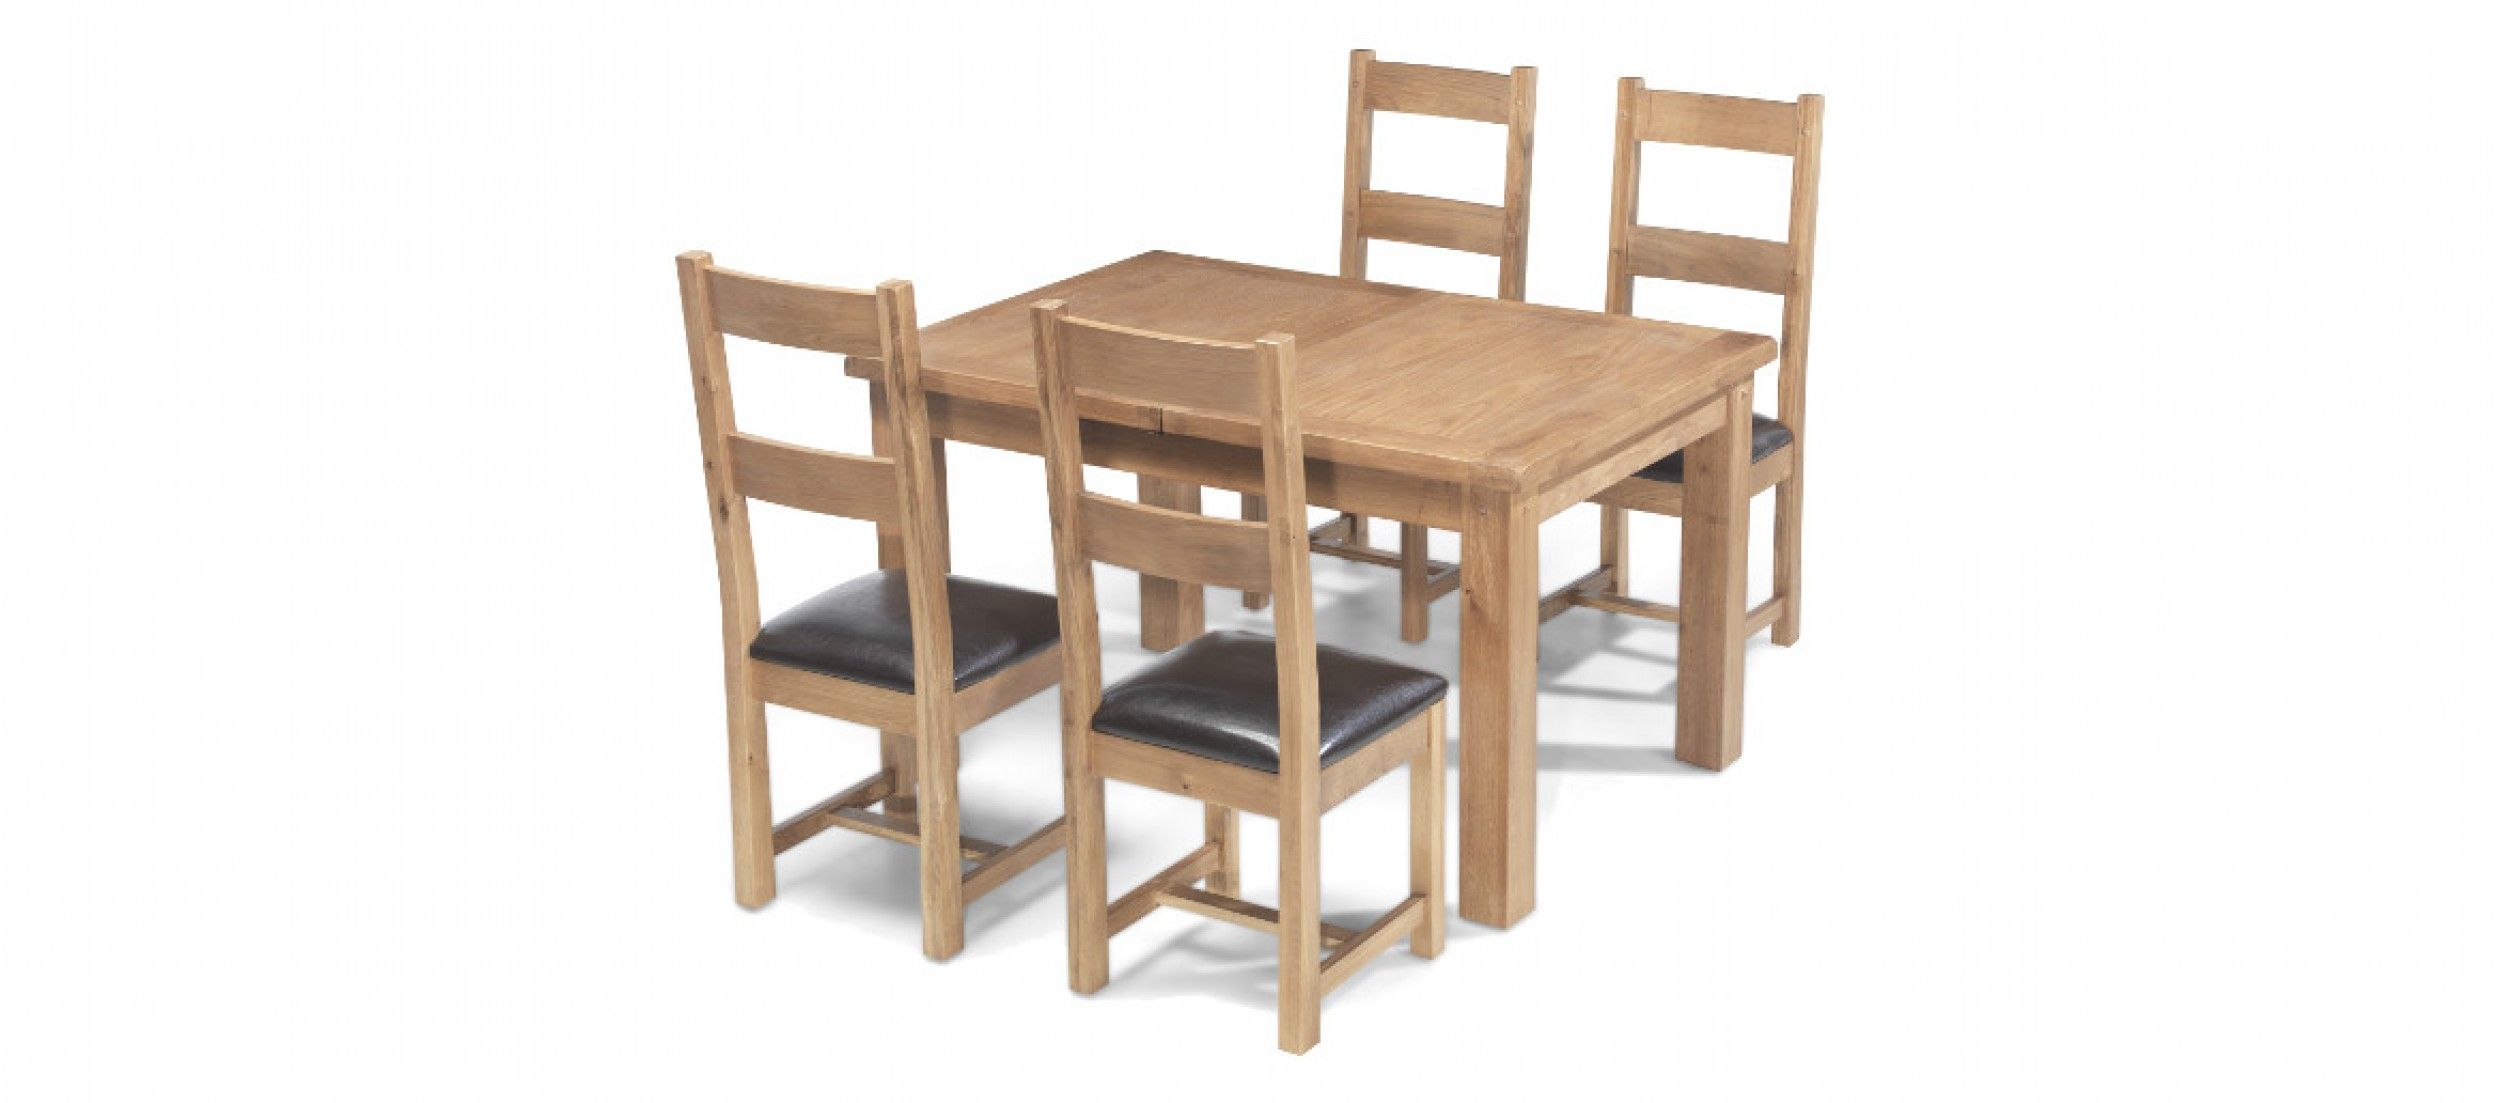 oak chairs sable ebonized chair in products dining